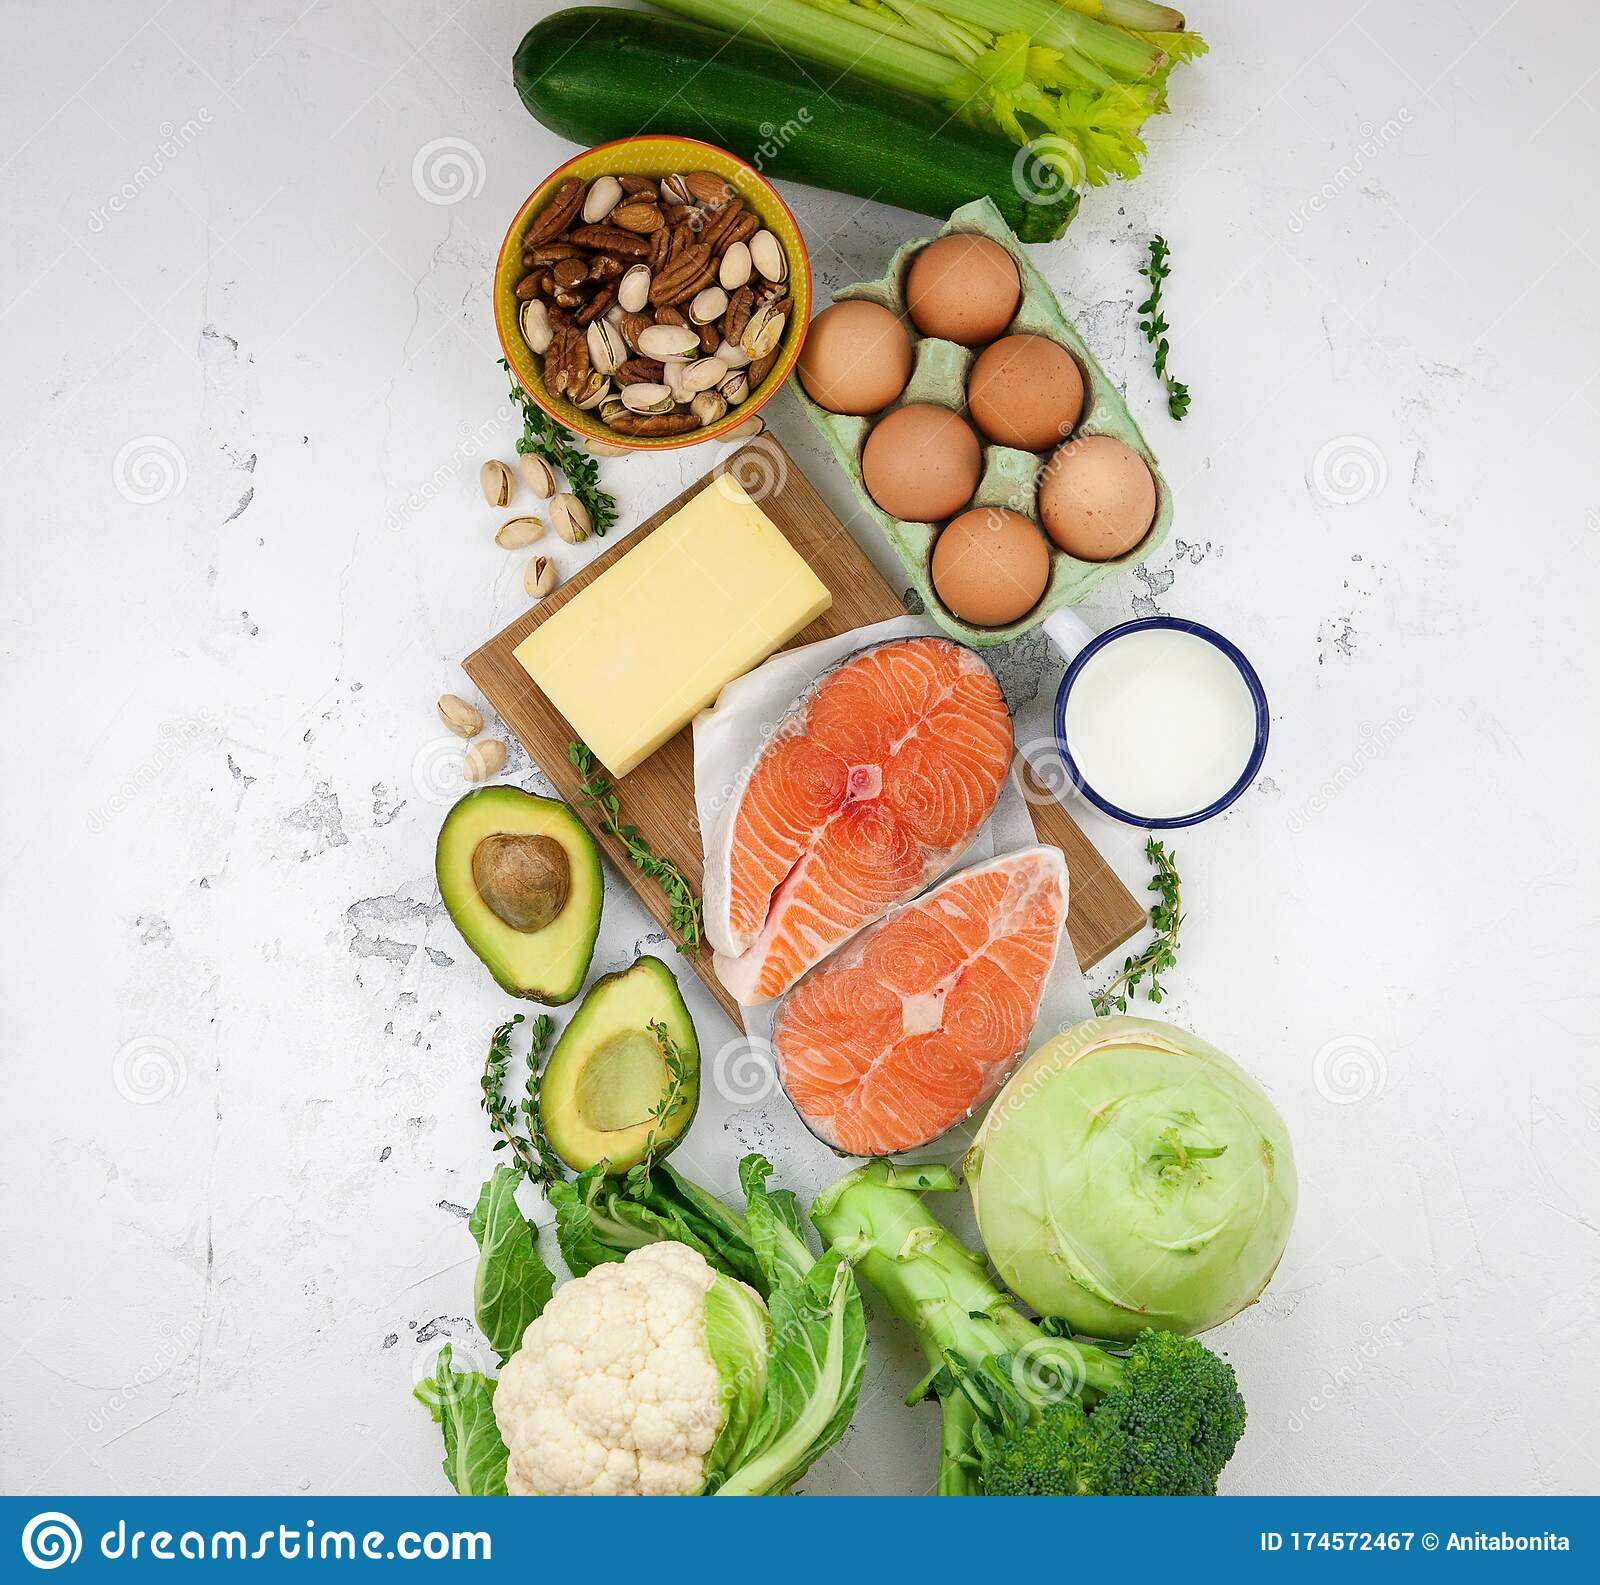 keto diet with avocado and nut allergy